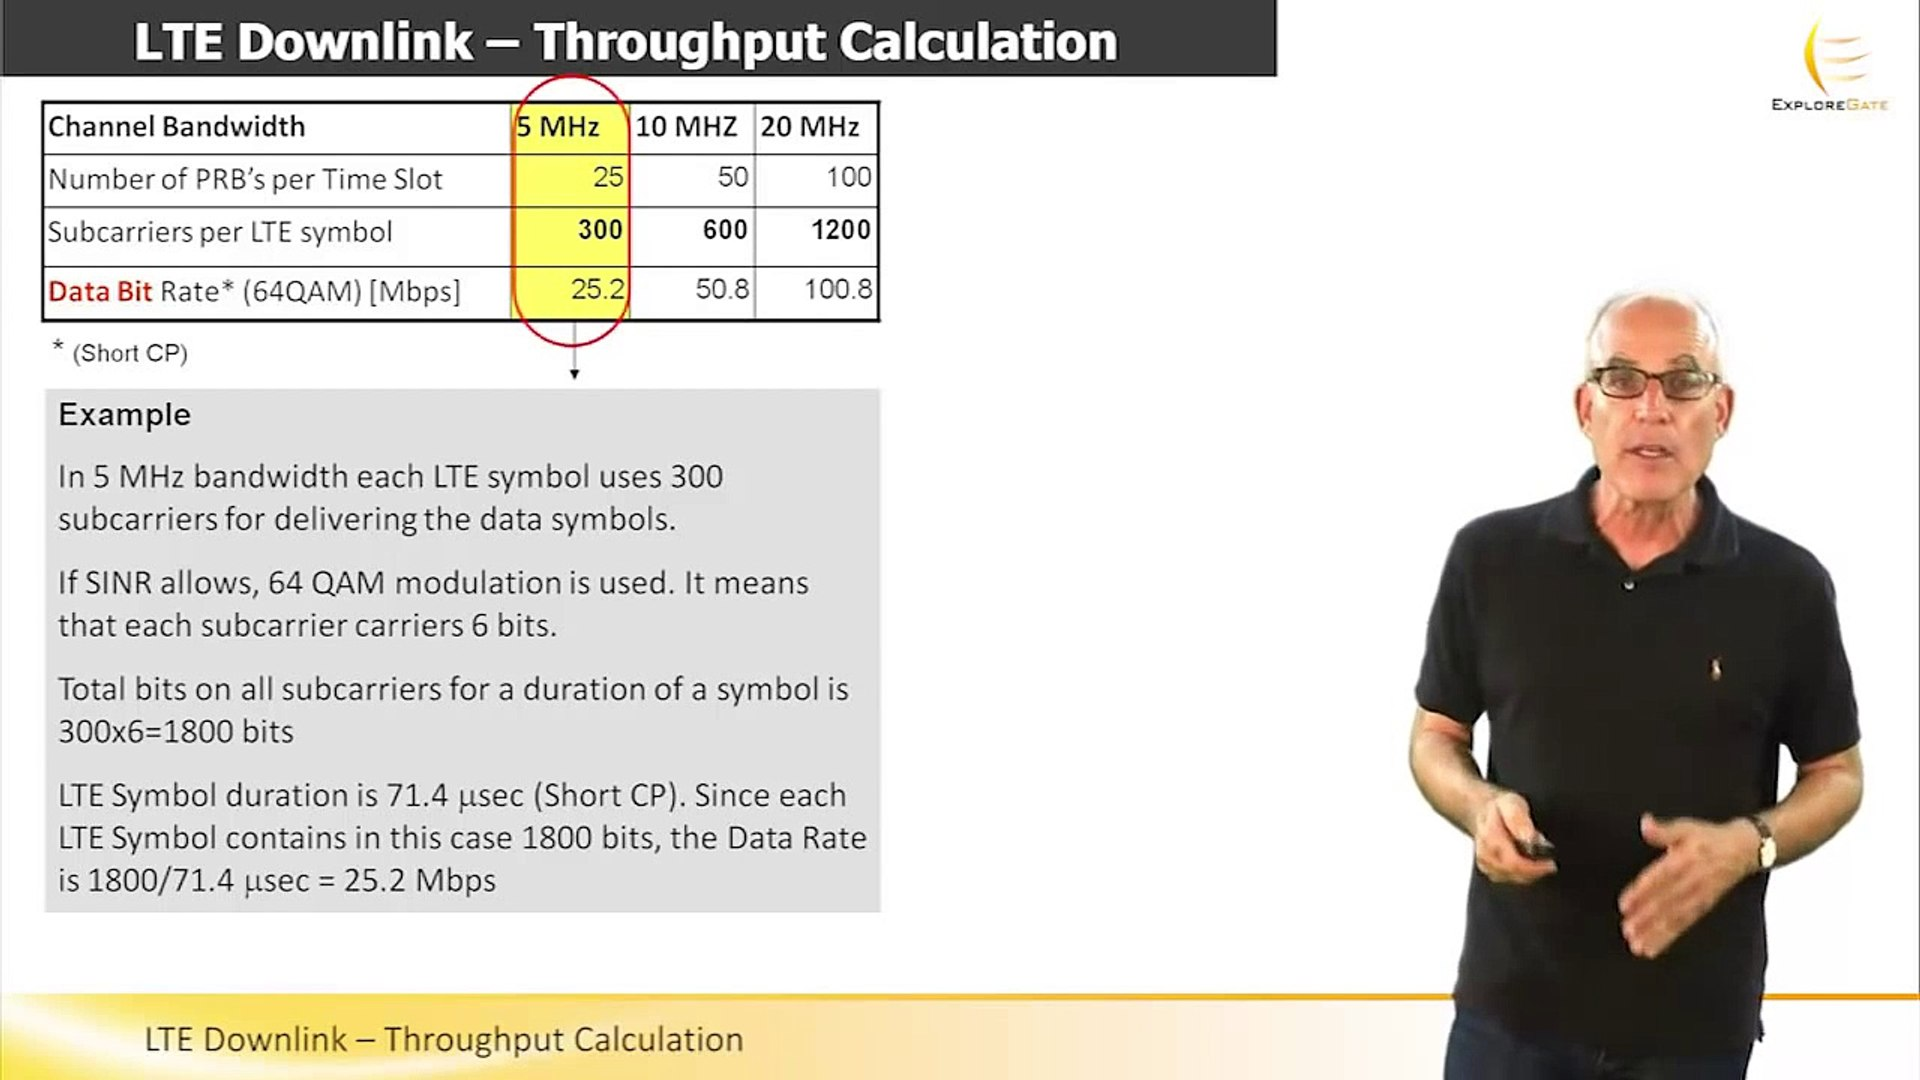 LTE Downlink -- Throughput Calculation - SixtySec